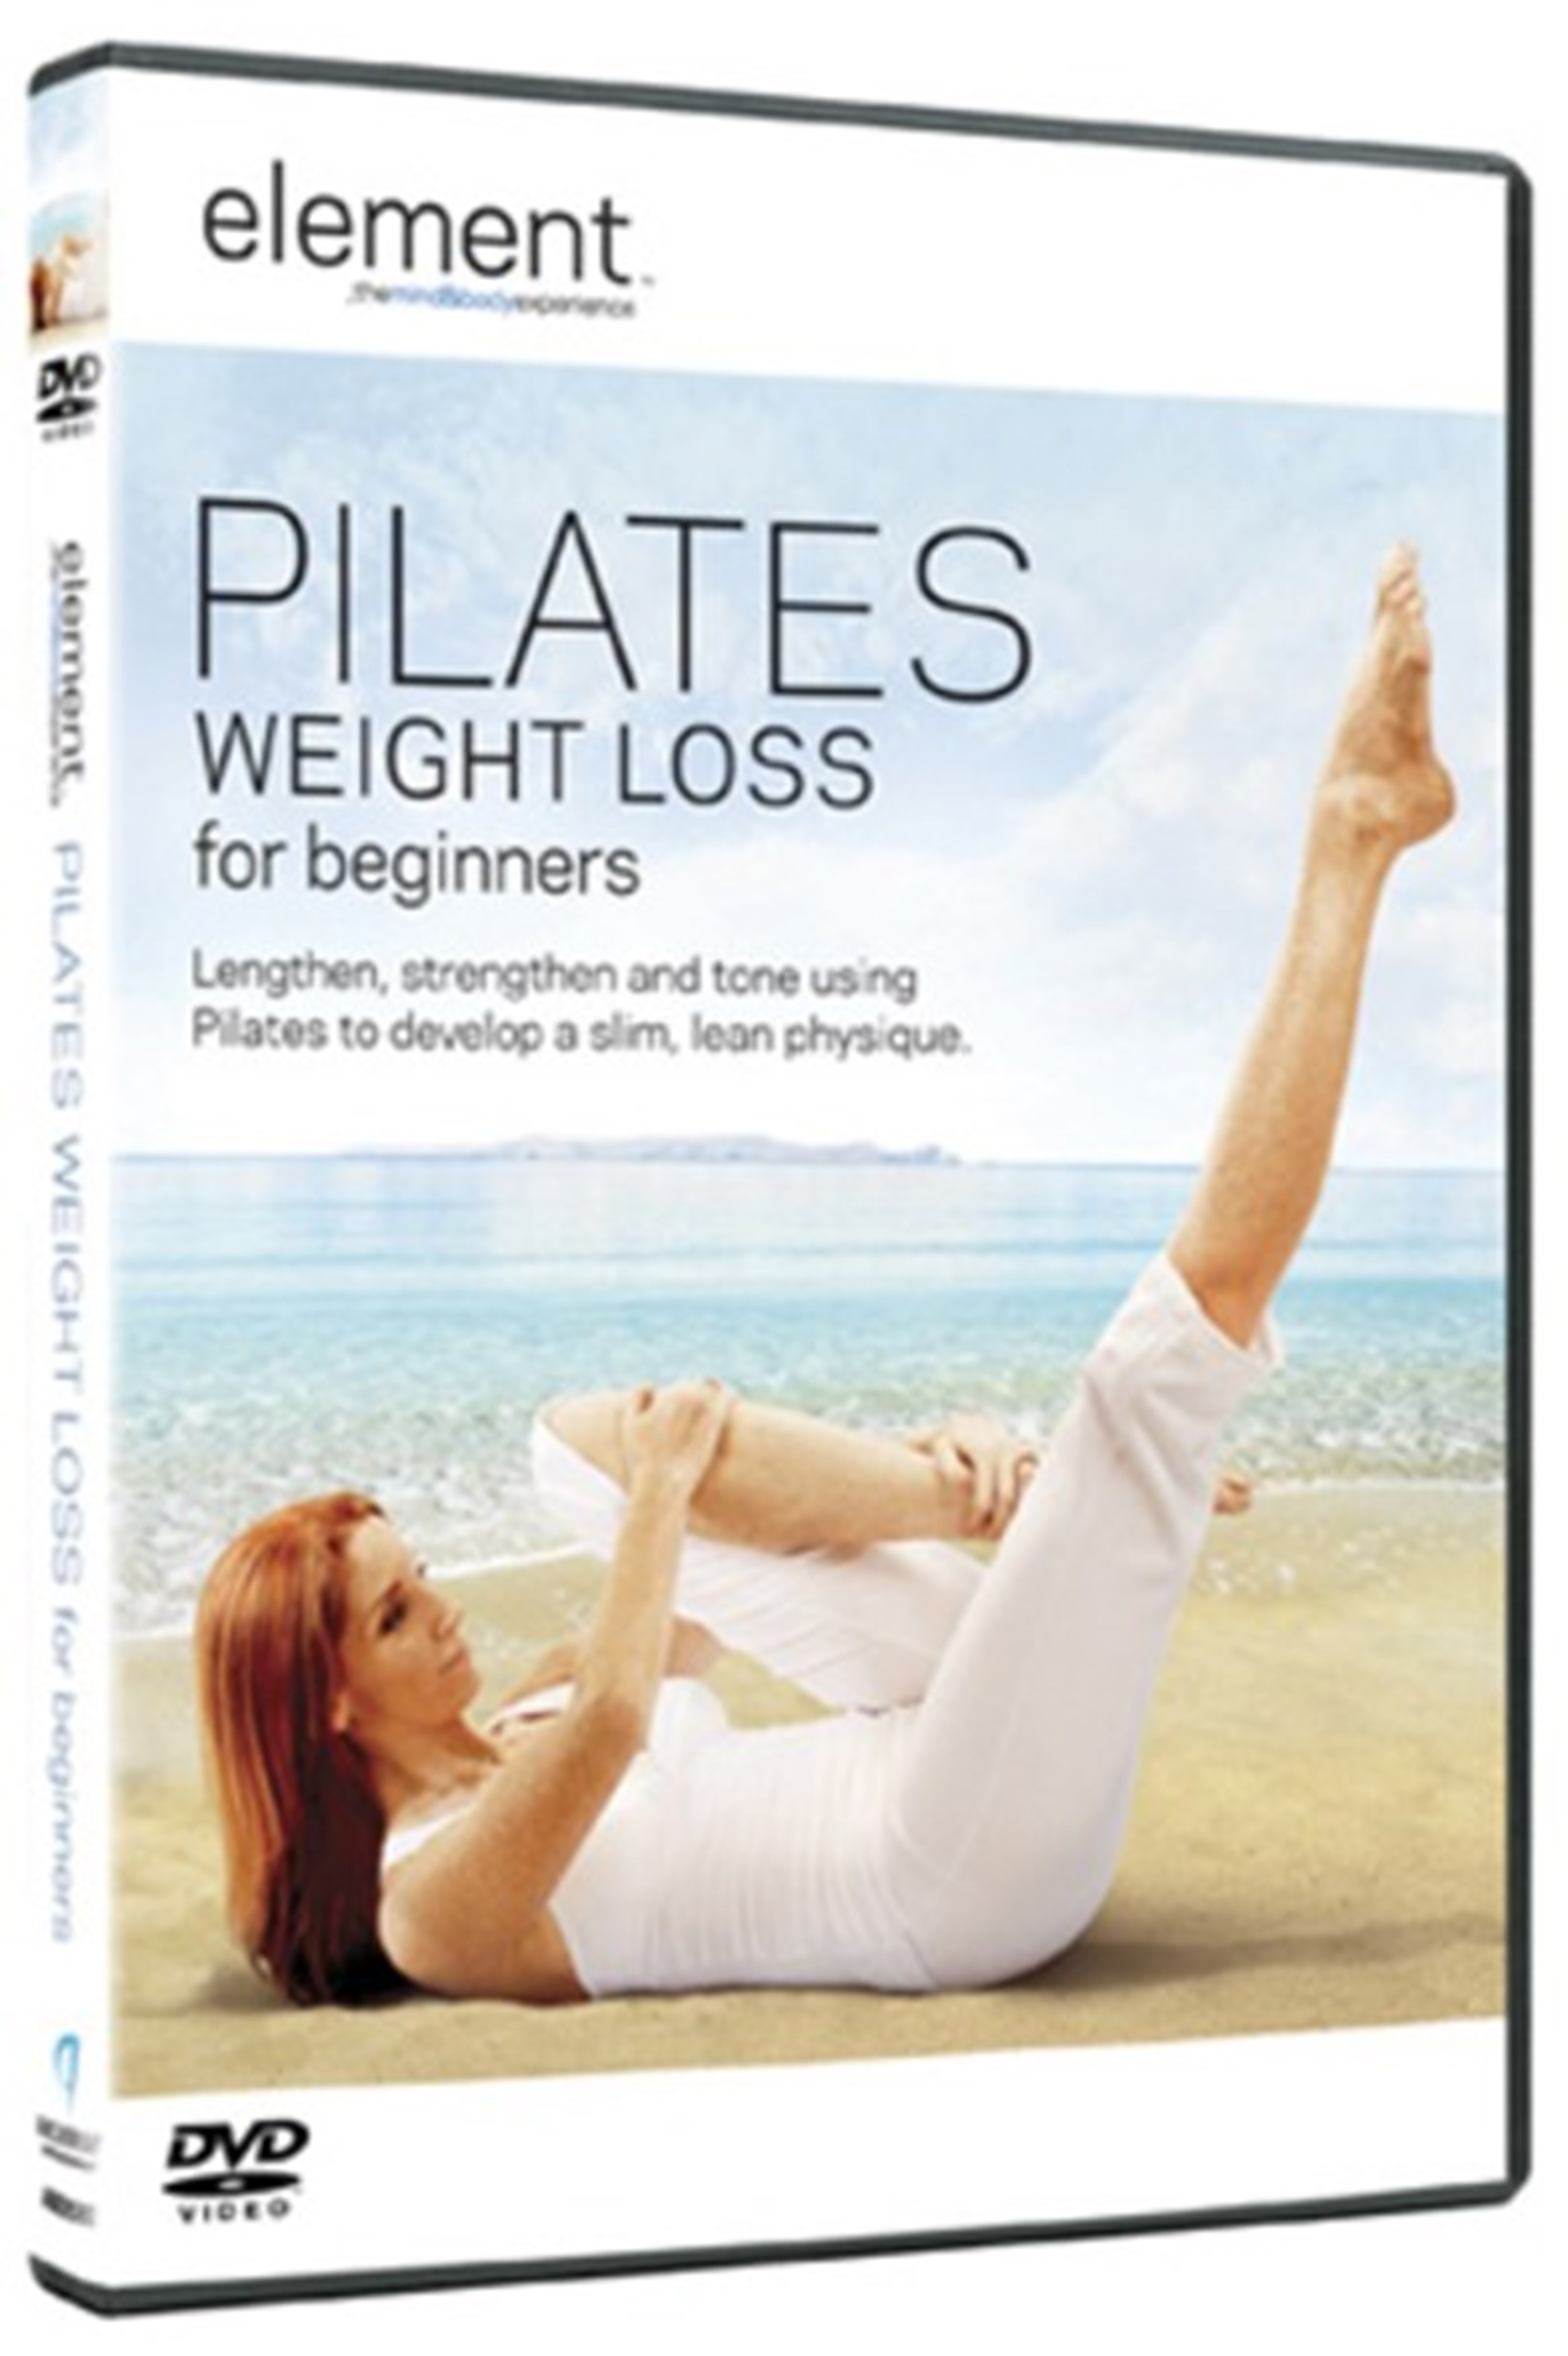 Element: Pilates Weight Loss for Beginners - 1